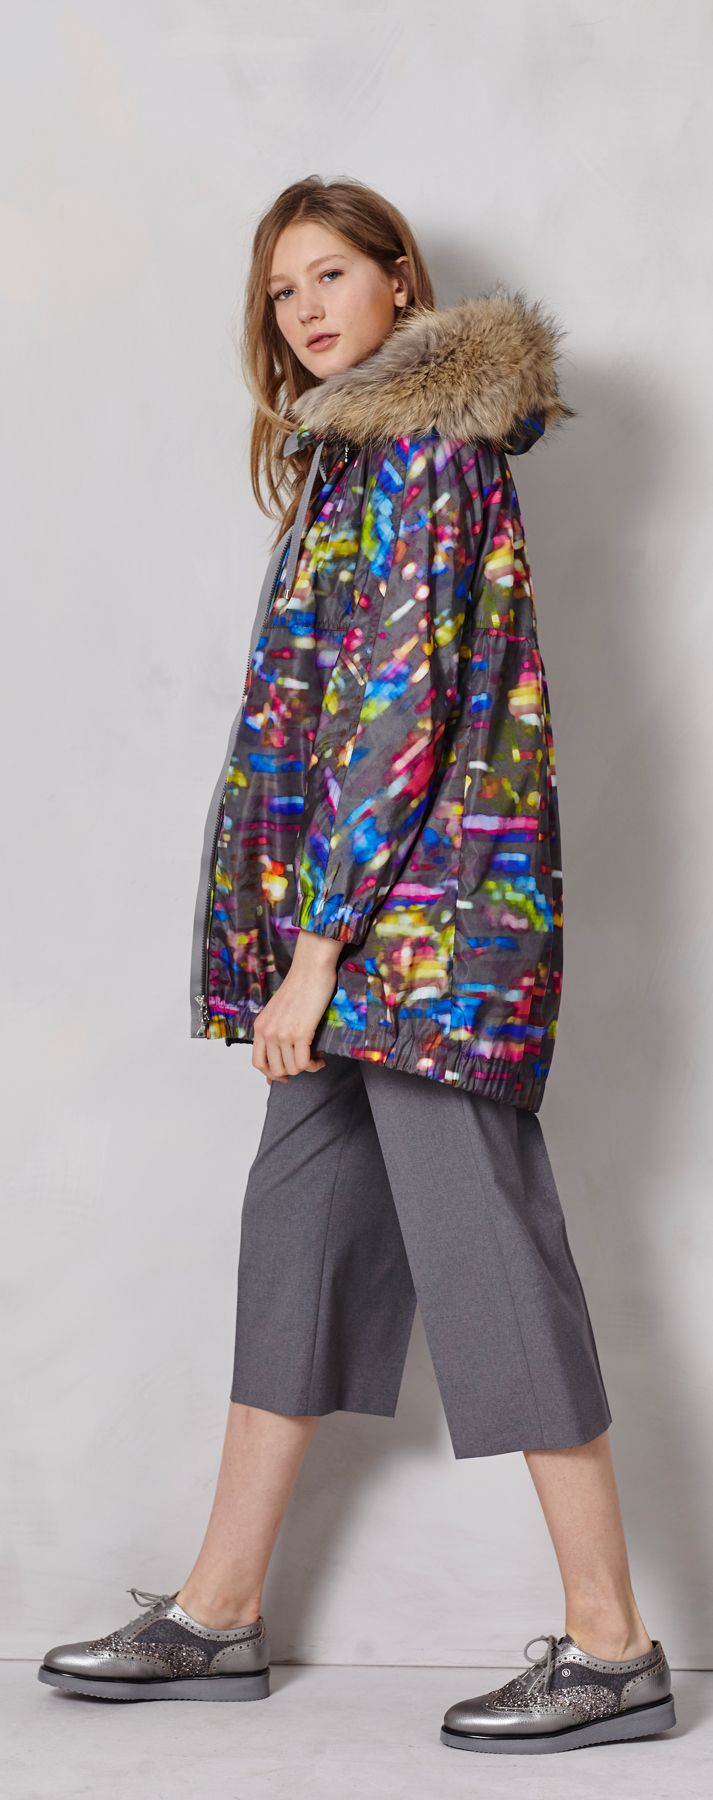 Flashing lights in a city where the weather can't seem to make up its mind! Keep warm yet comfortable in this light nylon jacket with a colorful, futuristic lights print and detachable fur lining on the hood. But still stay cool in a business-chic pair of culottes.